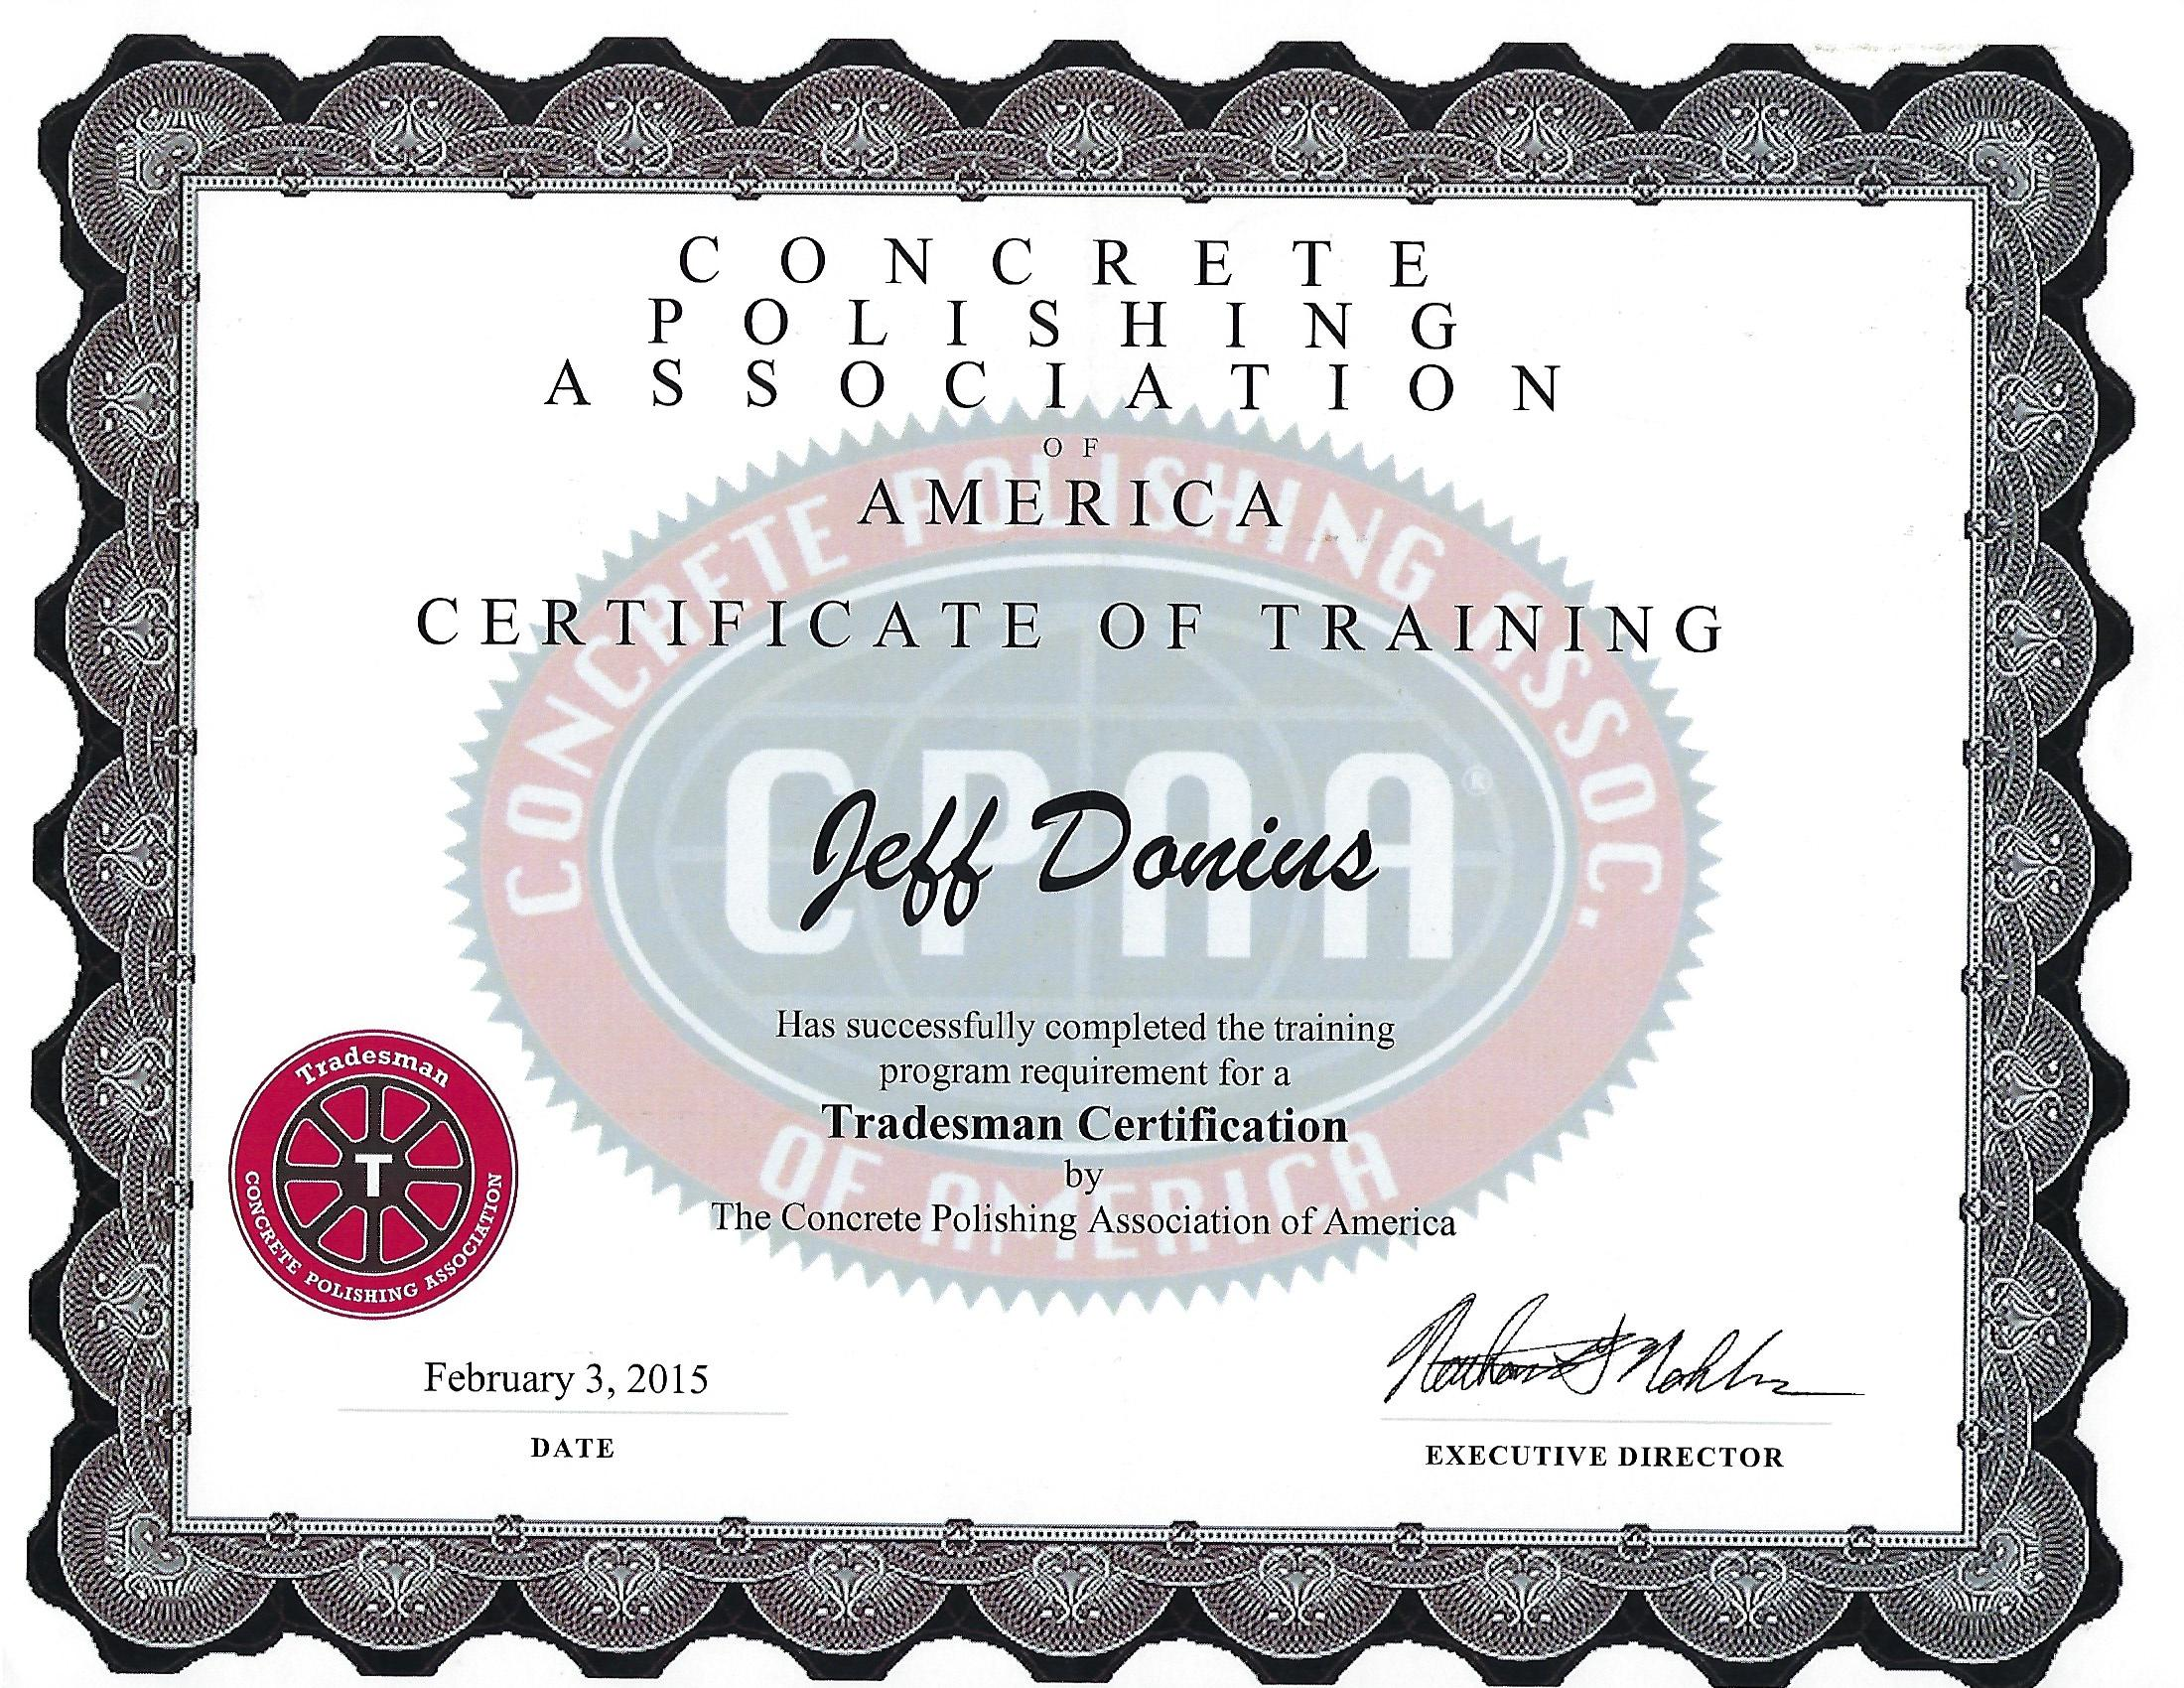 Tradesman Certificate From Concrete Polishing Association (Council) of American Society Of Concrete Contractors (ASCC)